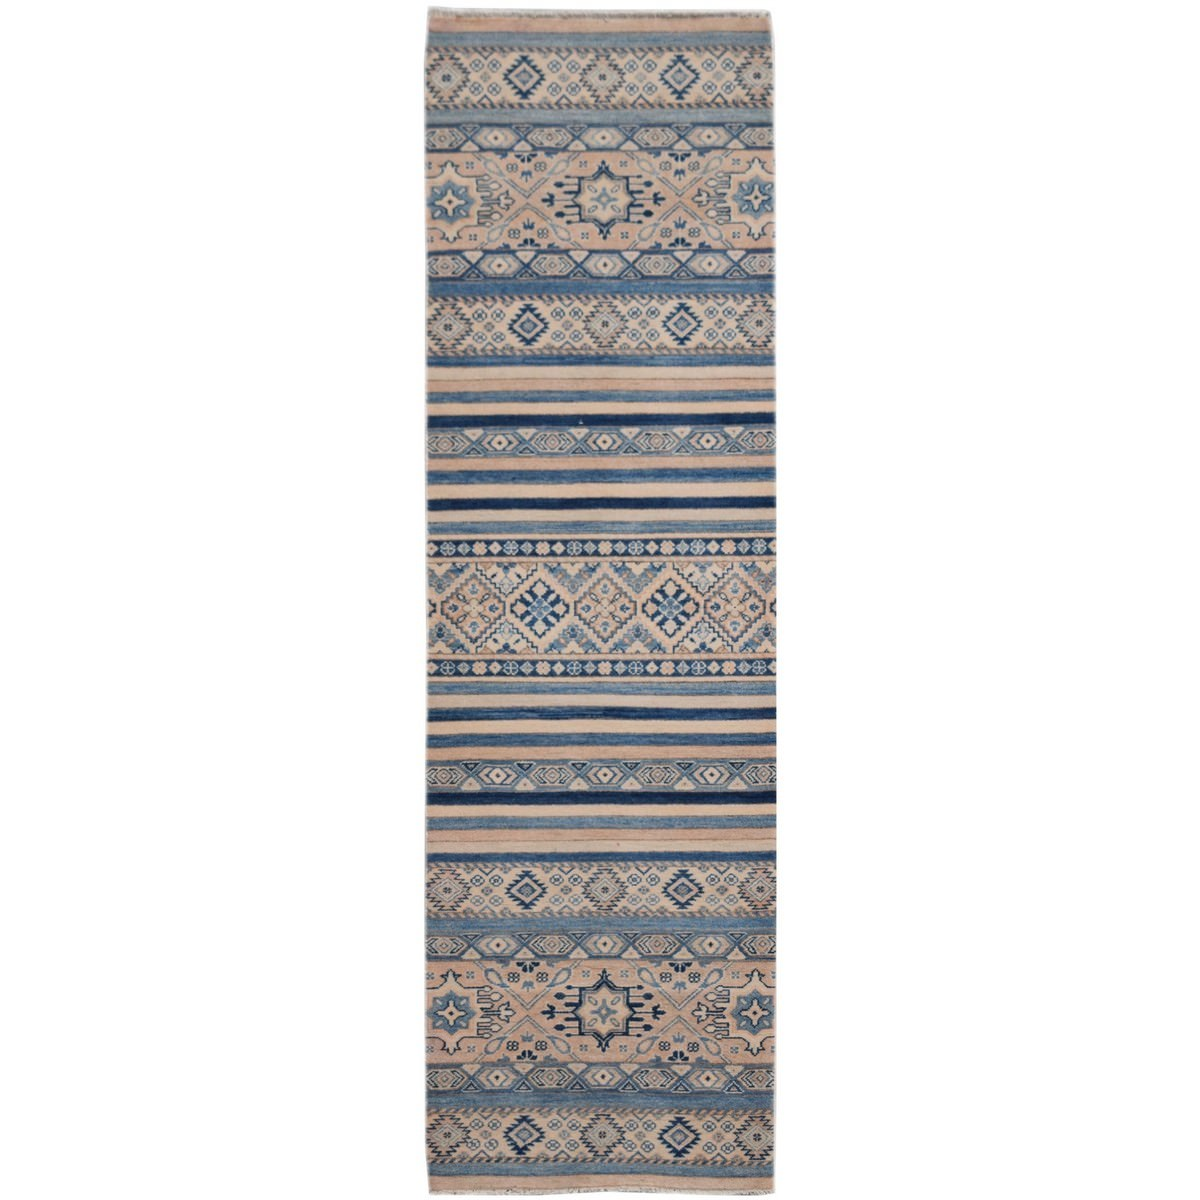 One of A Kind Kajetan Hand Knotted Wool Sultan Runner Rug, 296x79cm